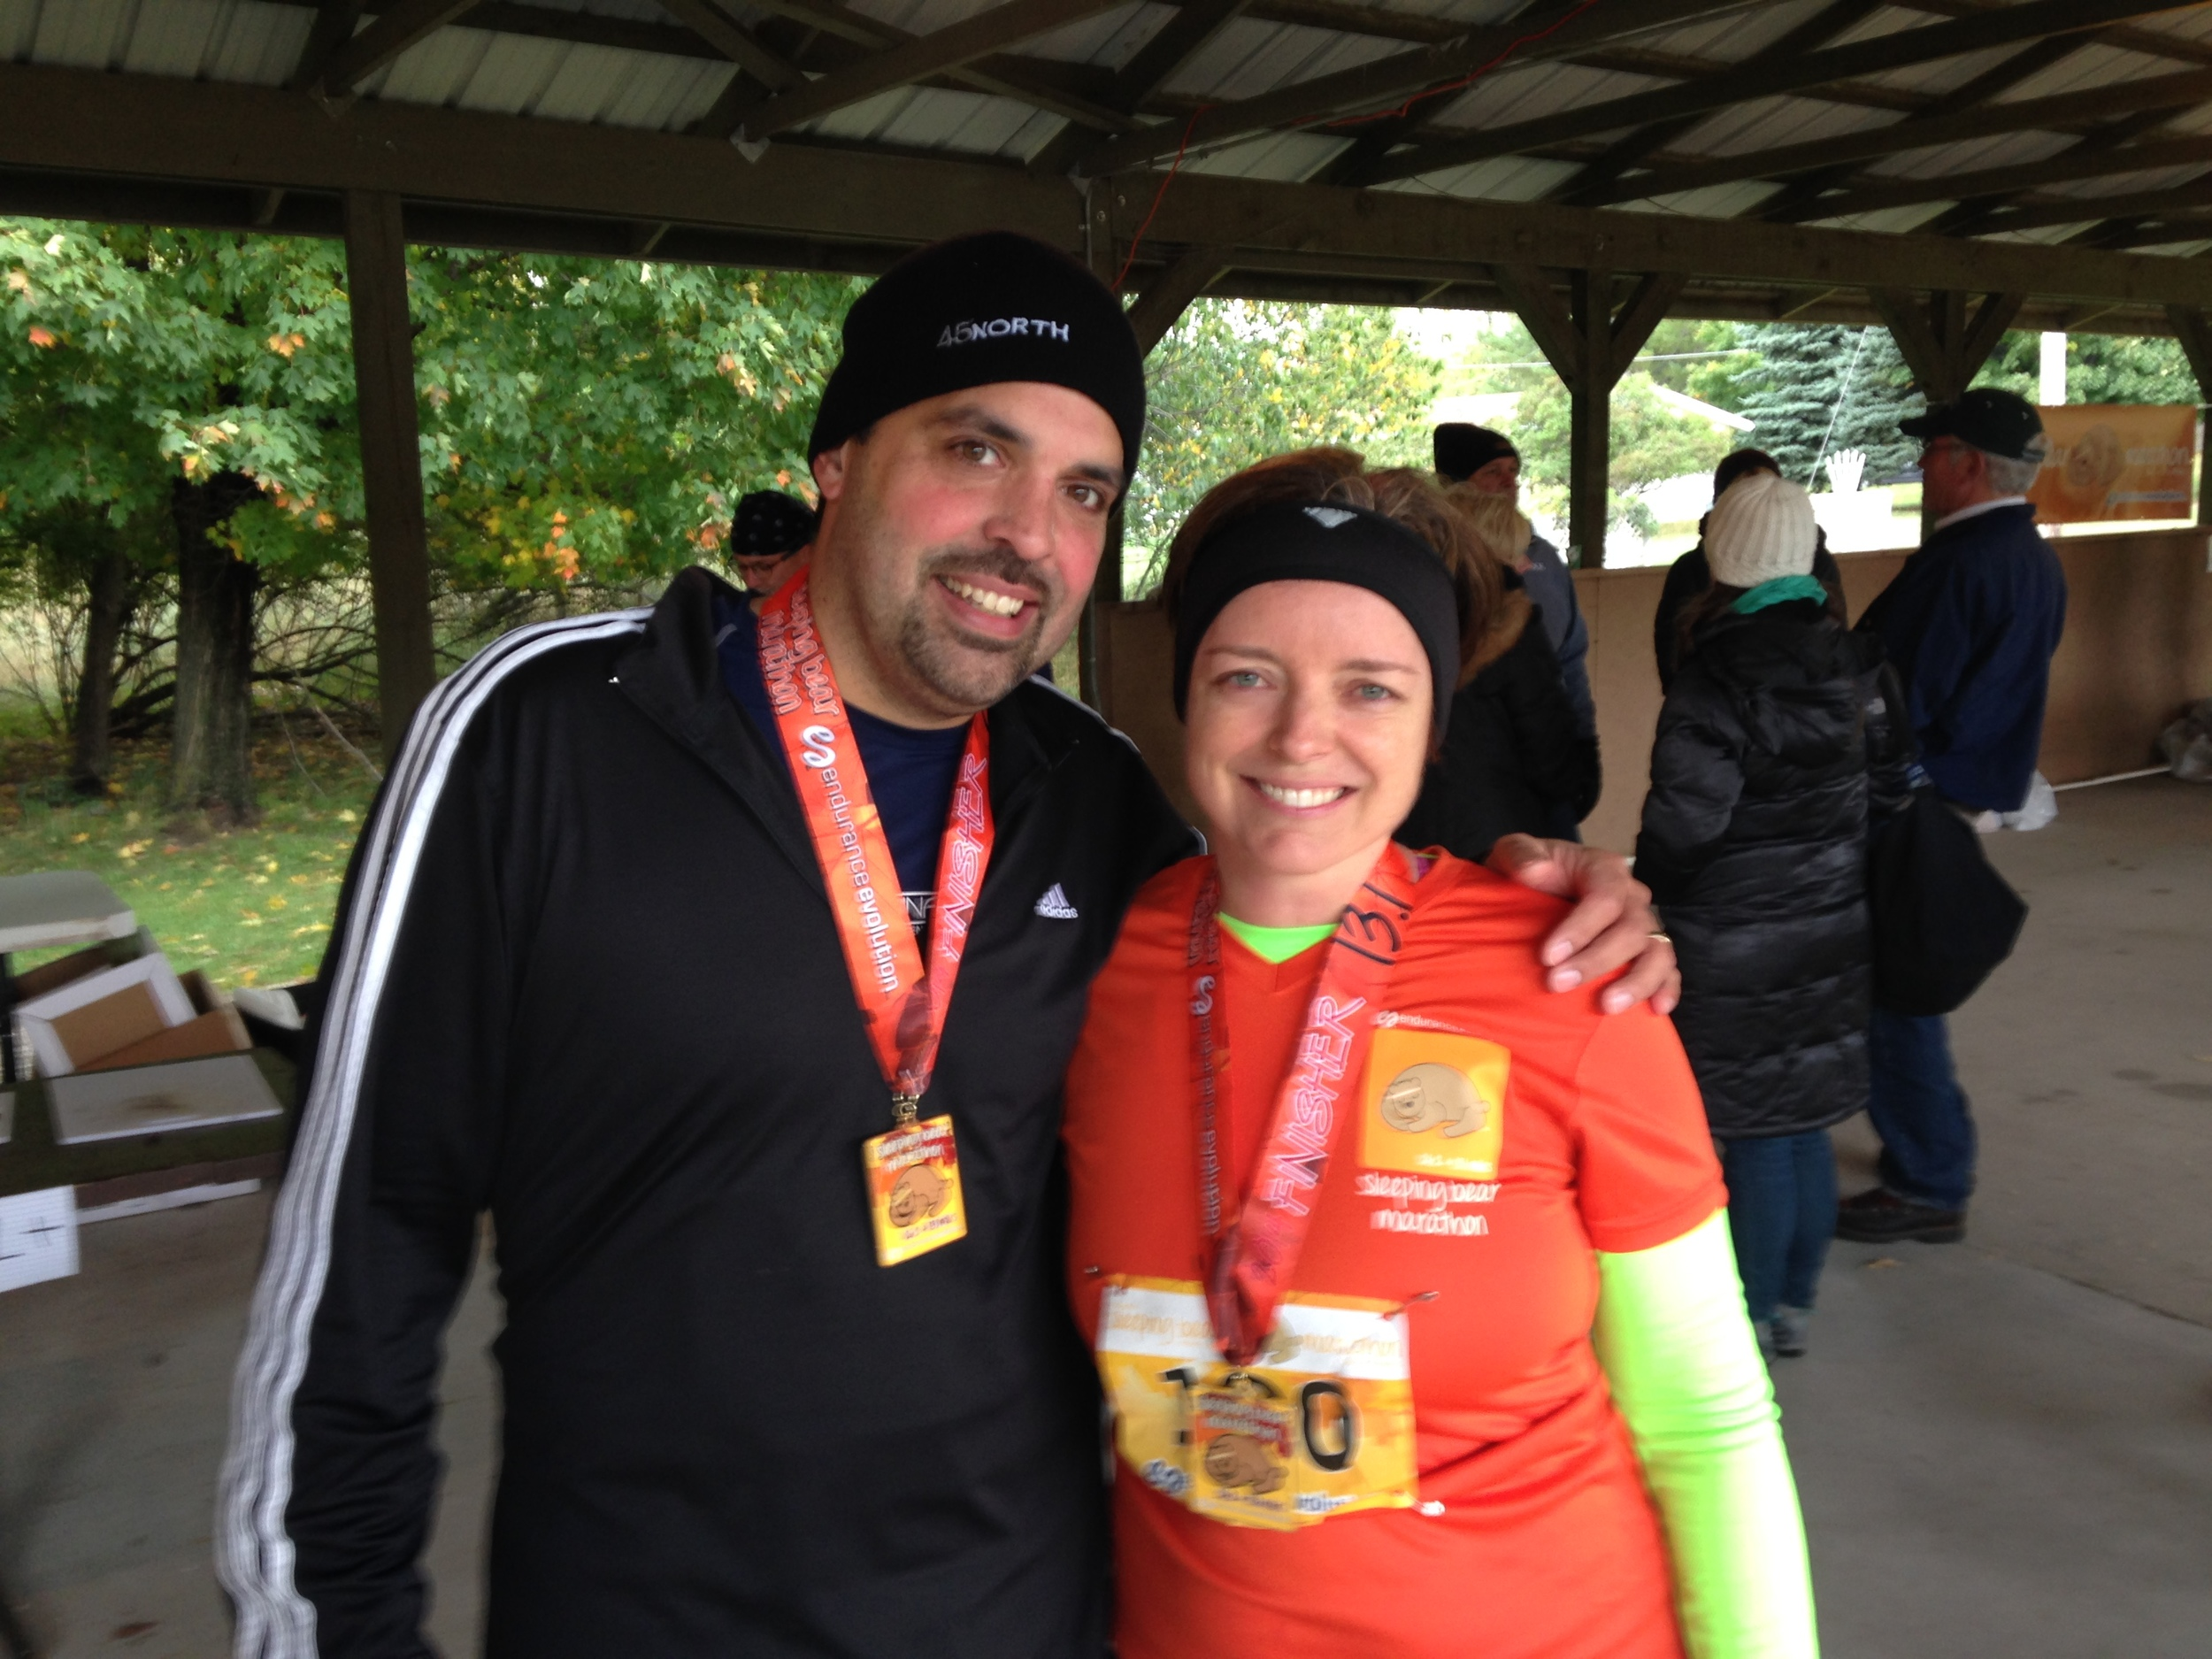 13.1 miles is a very LOOOOOOOOOOONG distance to run. But we did it!